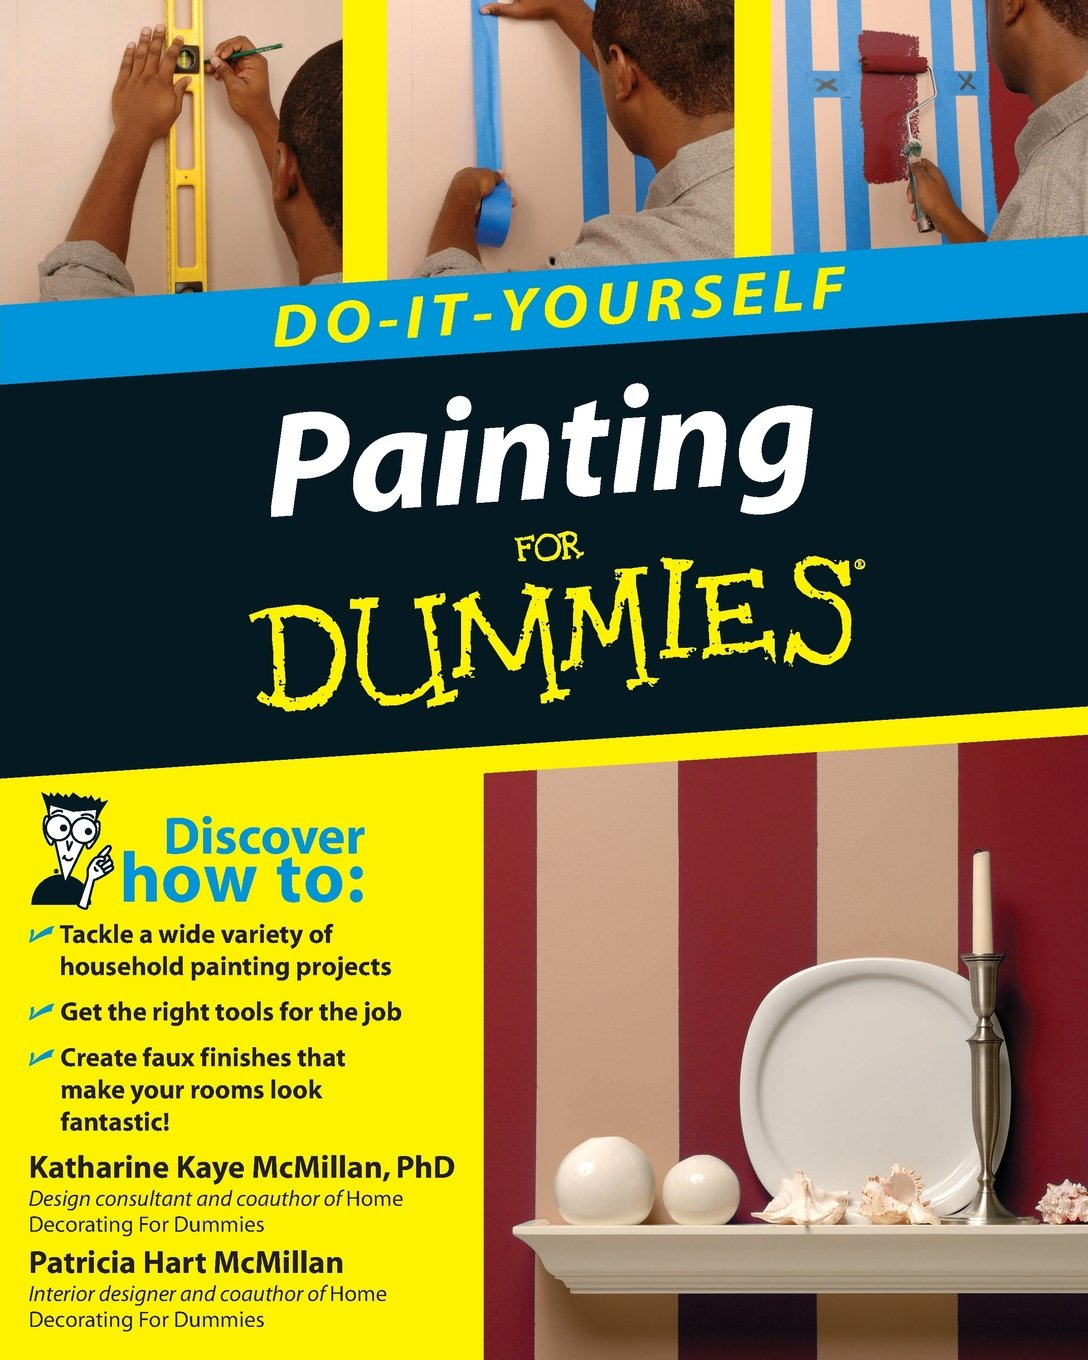 Painting do it yourself for dummies katharine kaye mcmillan painting do it yourself for dummies katharine kaye mcmillan patricia hart mcmillan 9780470175330 amazon books solutioingenieria